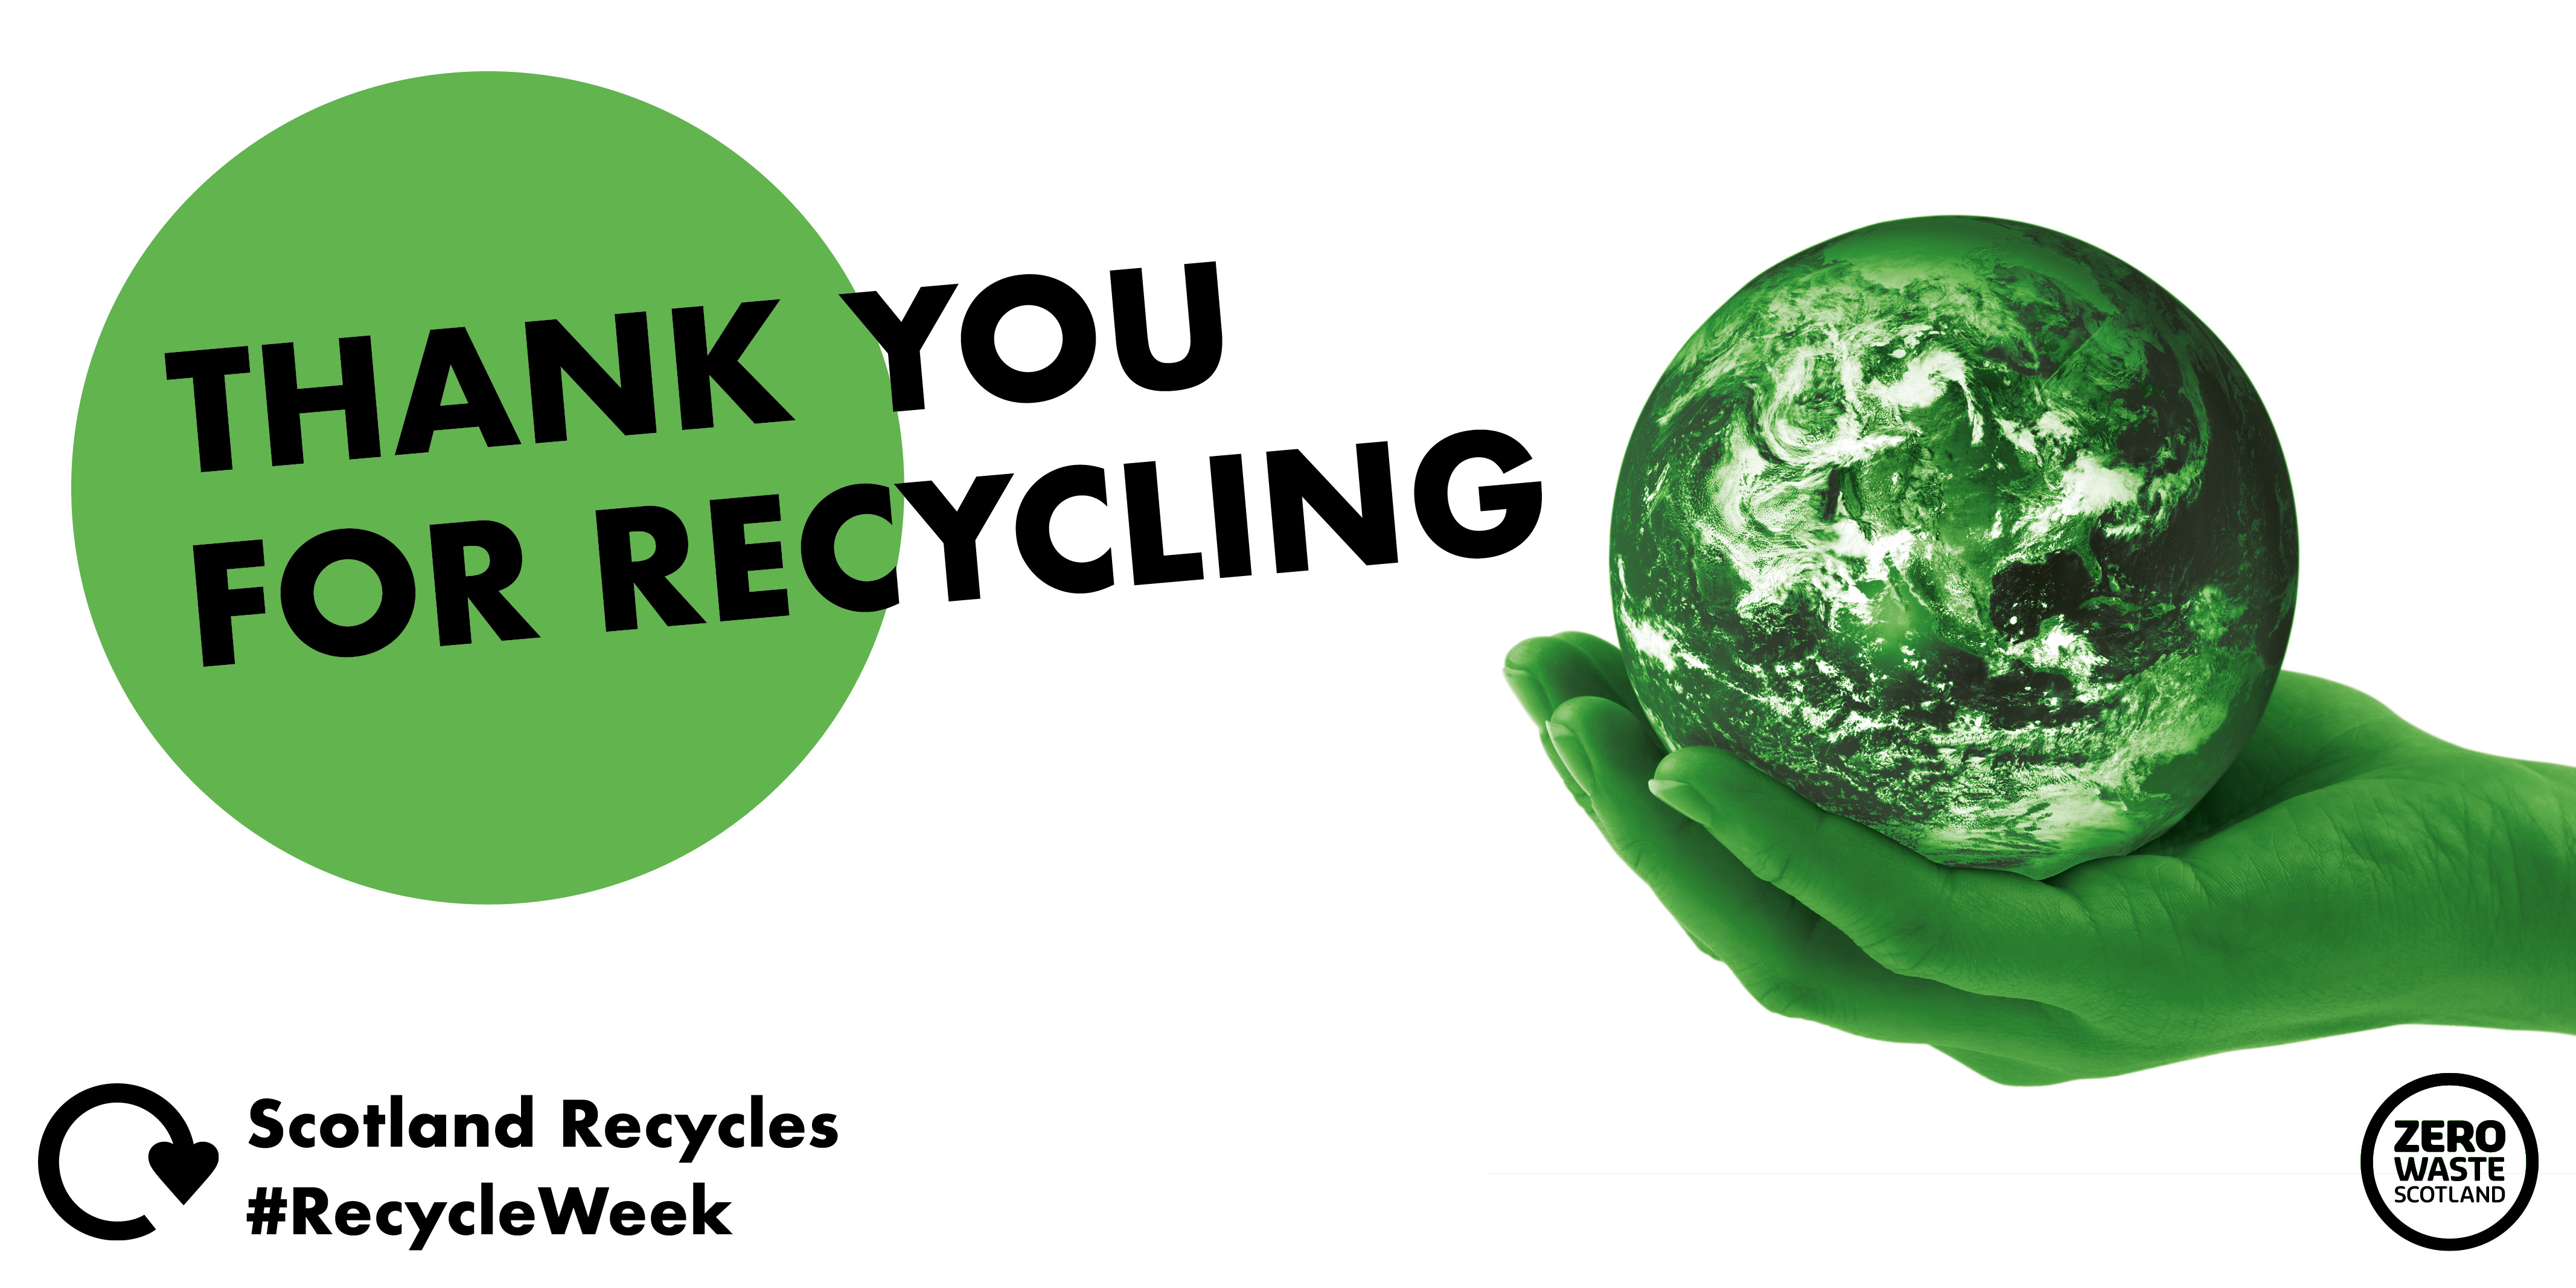 Thank you for recycling text over image of green hands holding a green model earth